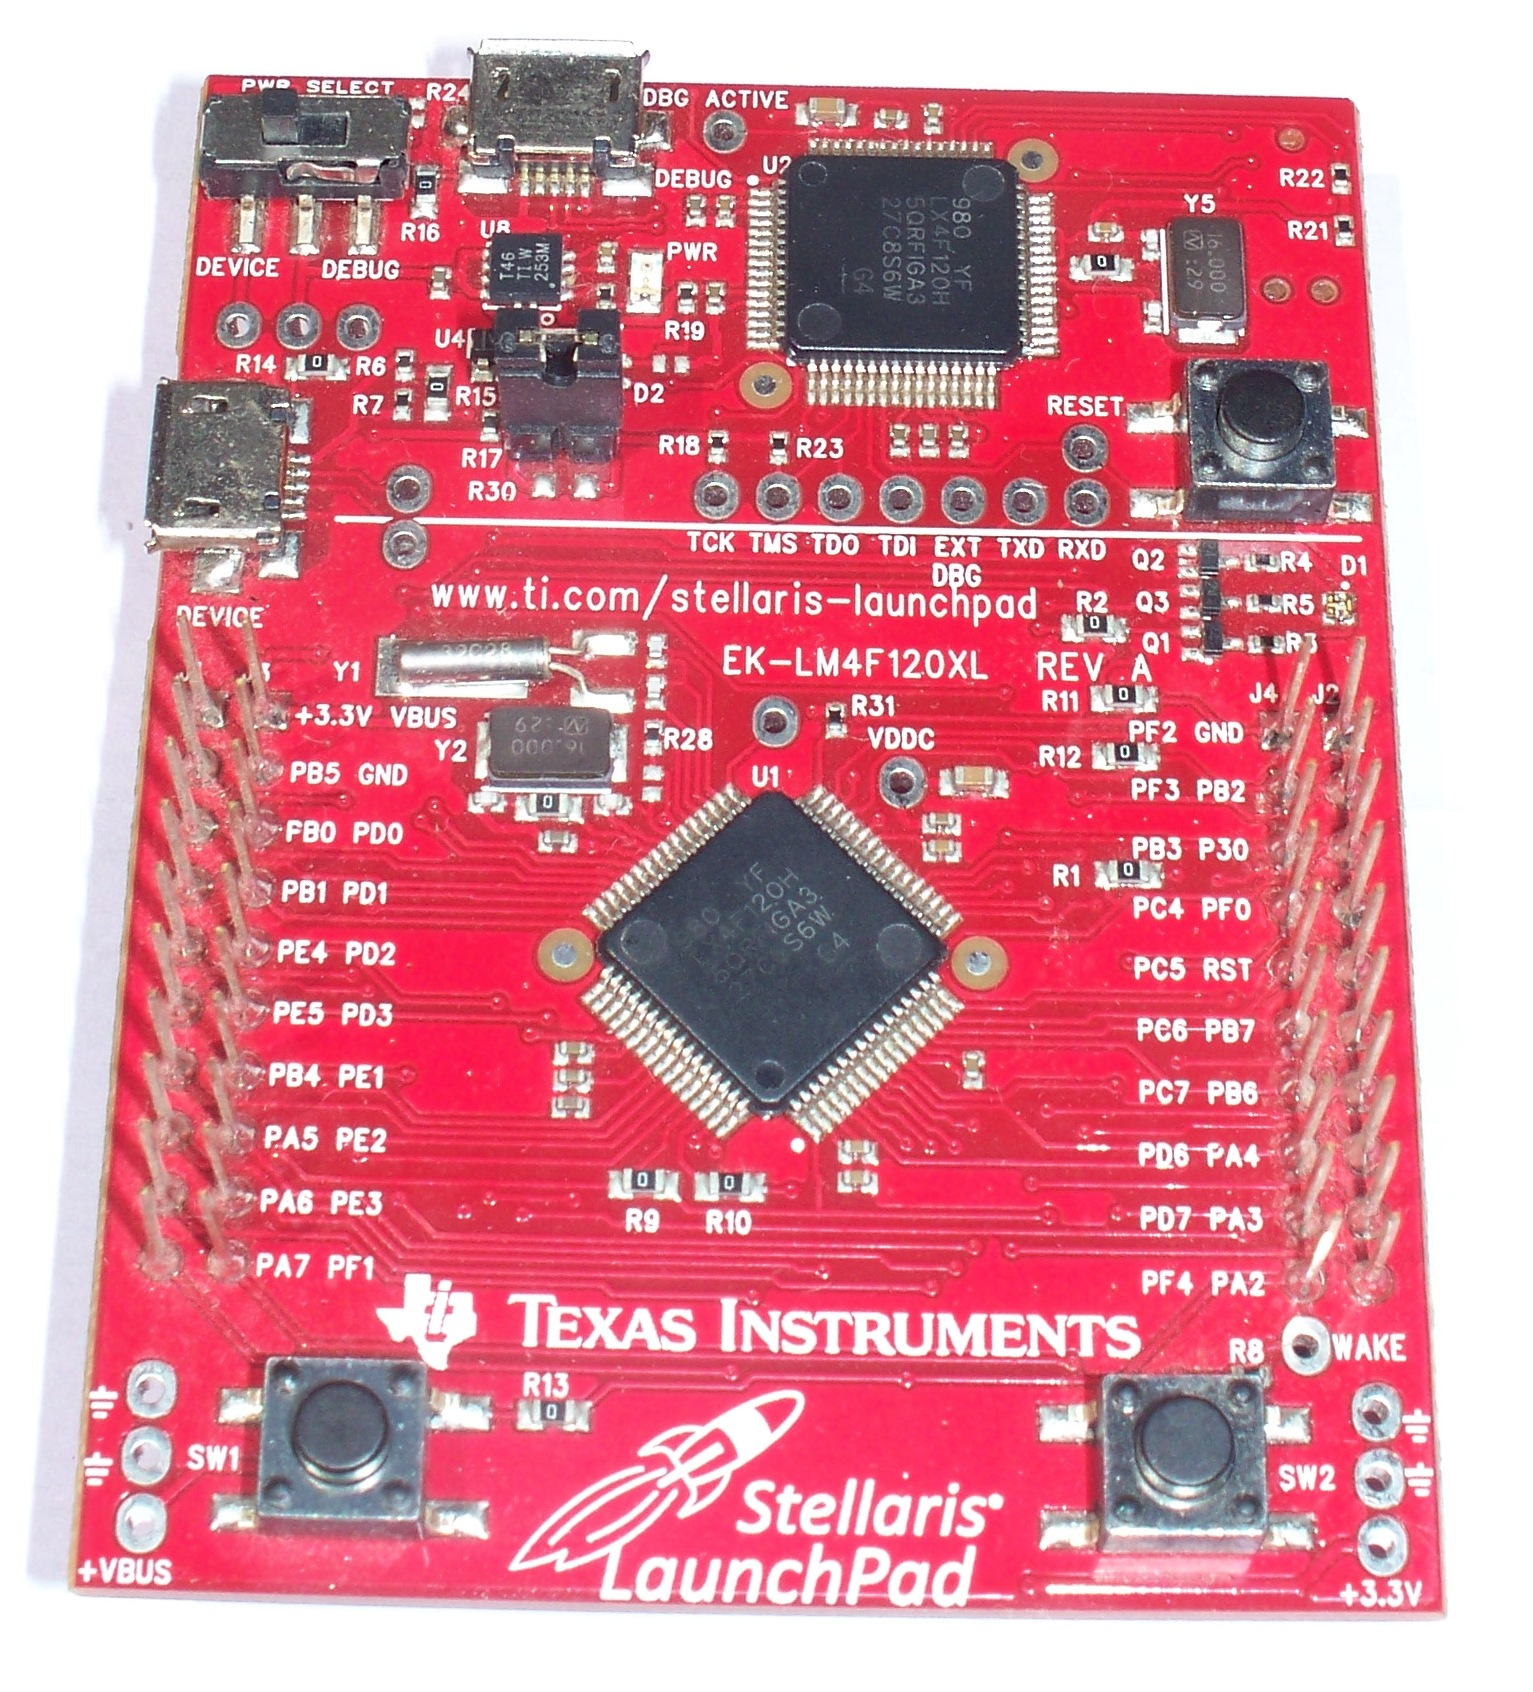 Arm Cortex M Wikipedia Ti Application Note Second Level Bootloader For Flash Bootloading On Tms 320c6000 Stellaris Launchpad Board With Lm4f120